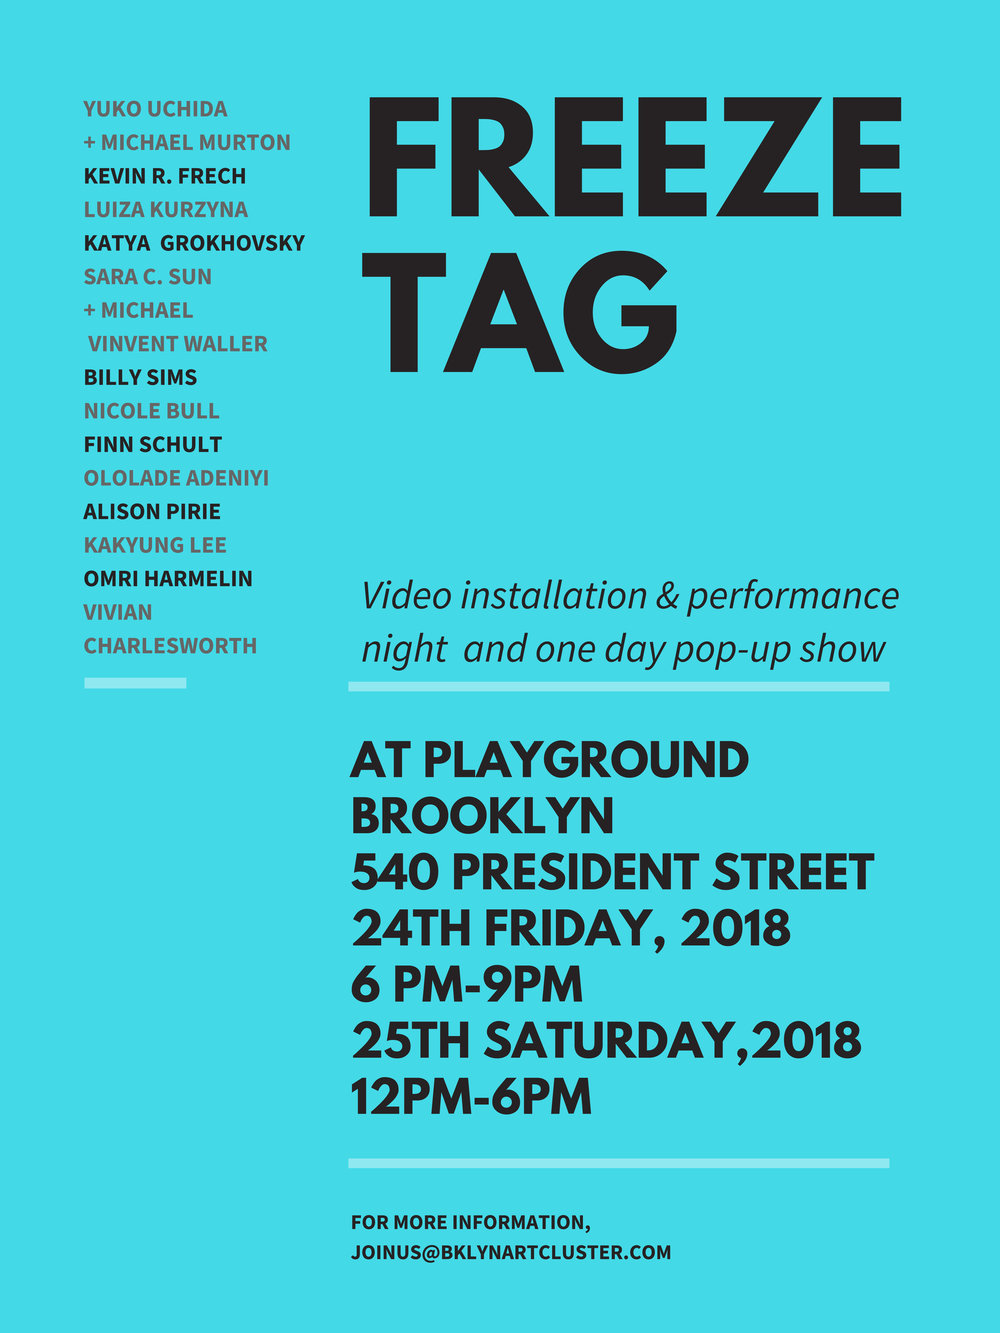 Freeze tag poster.jpg